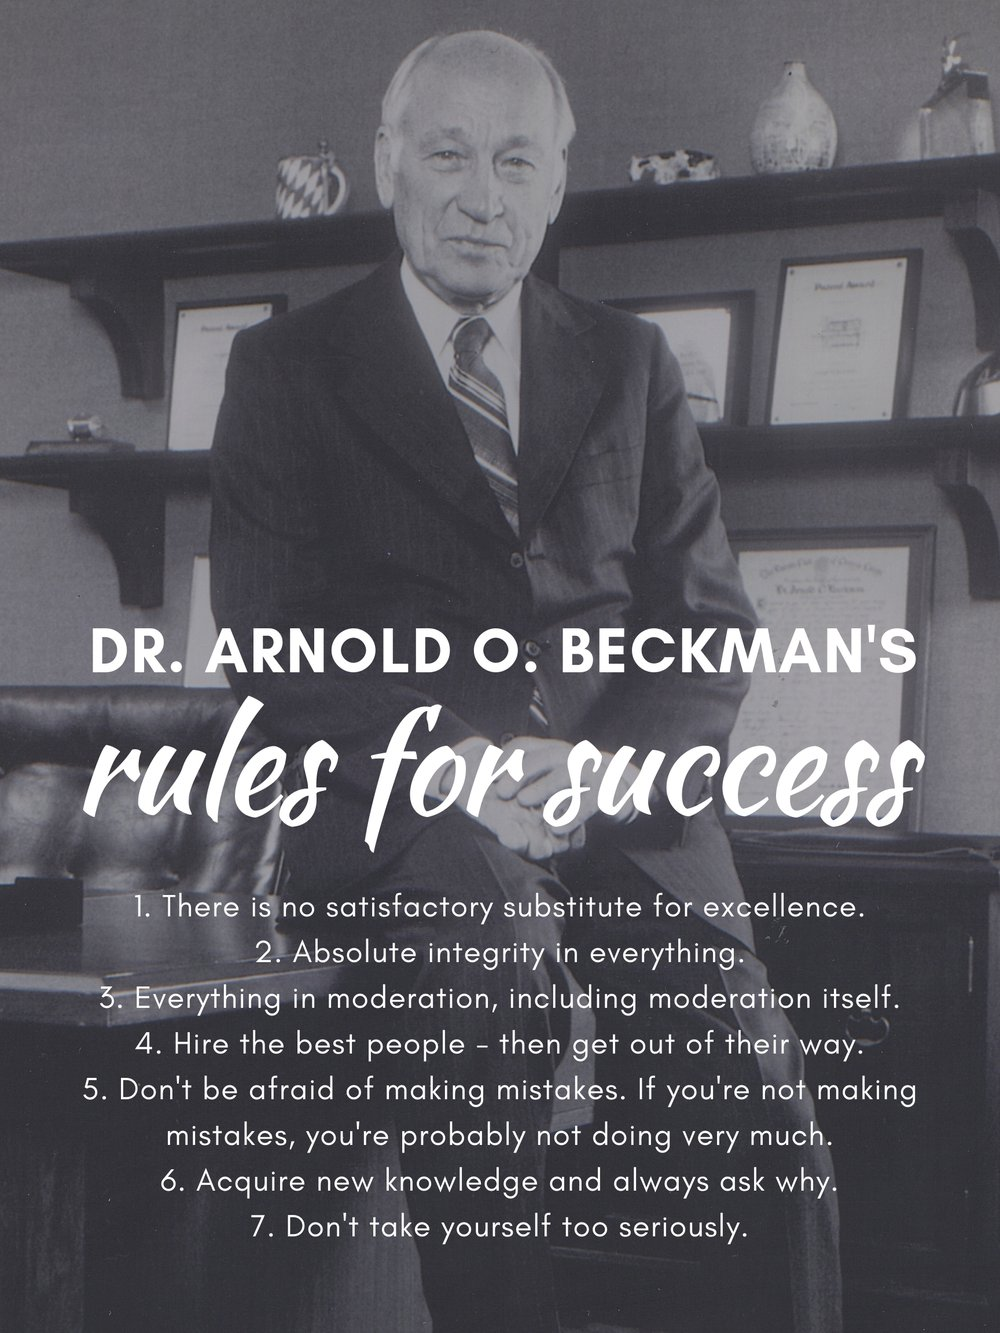 Beckman Rules for Success.jpg